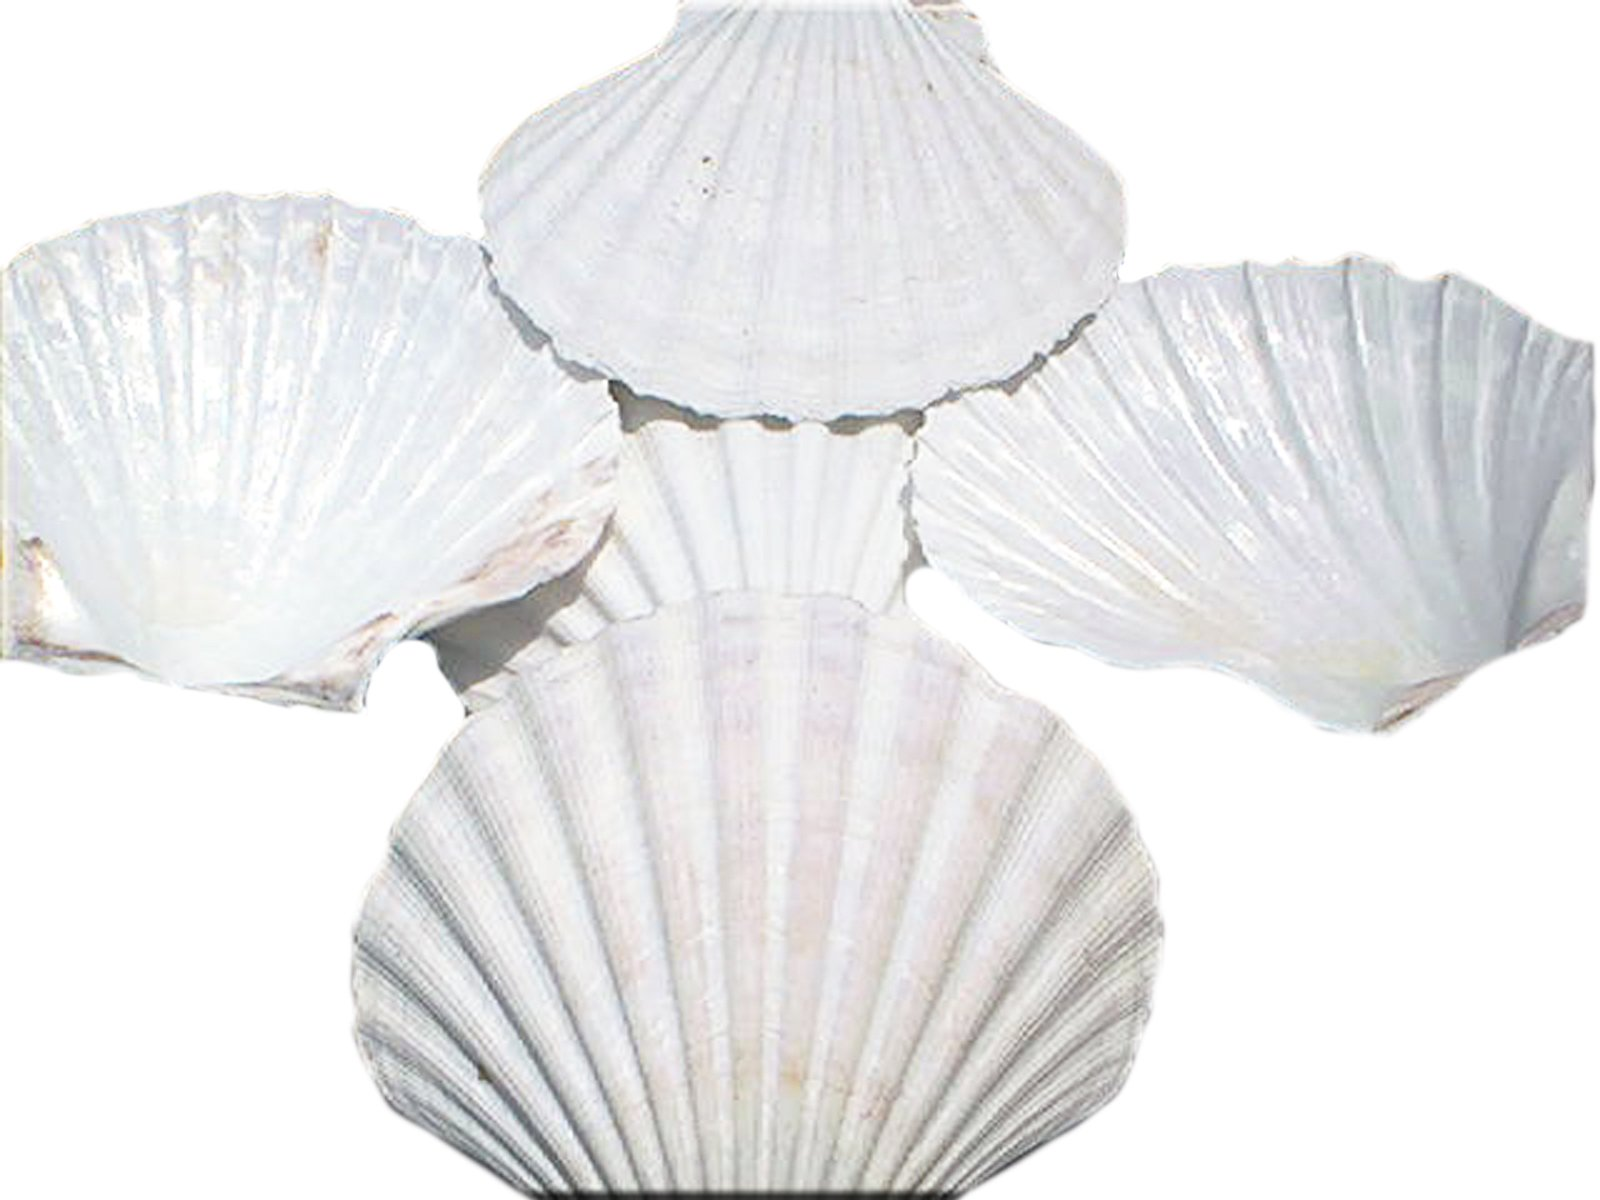 Set of 50 Large White Baking Scallop (3.5''-4'') Restaurant Quality Real Seashells Beach Wedding Coastal Crafts and Decor - Florida Shells and Gifts Inc. by Florida Shells and Gifts Inc.